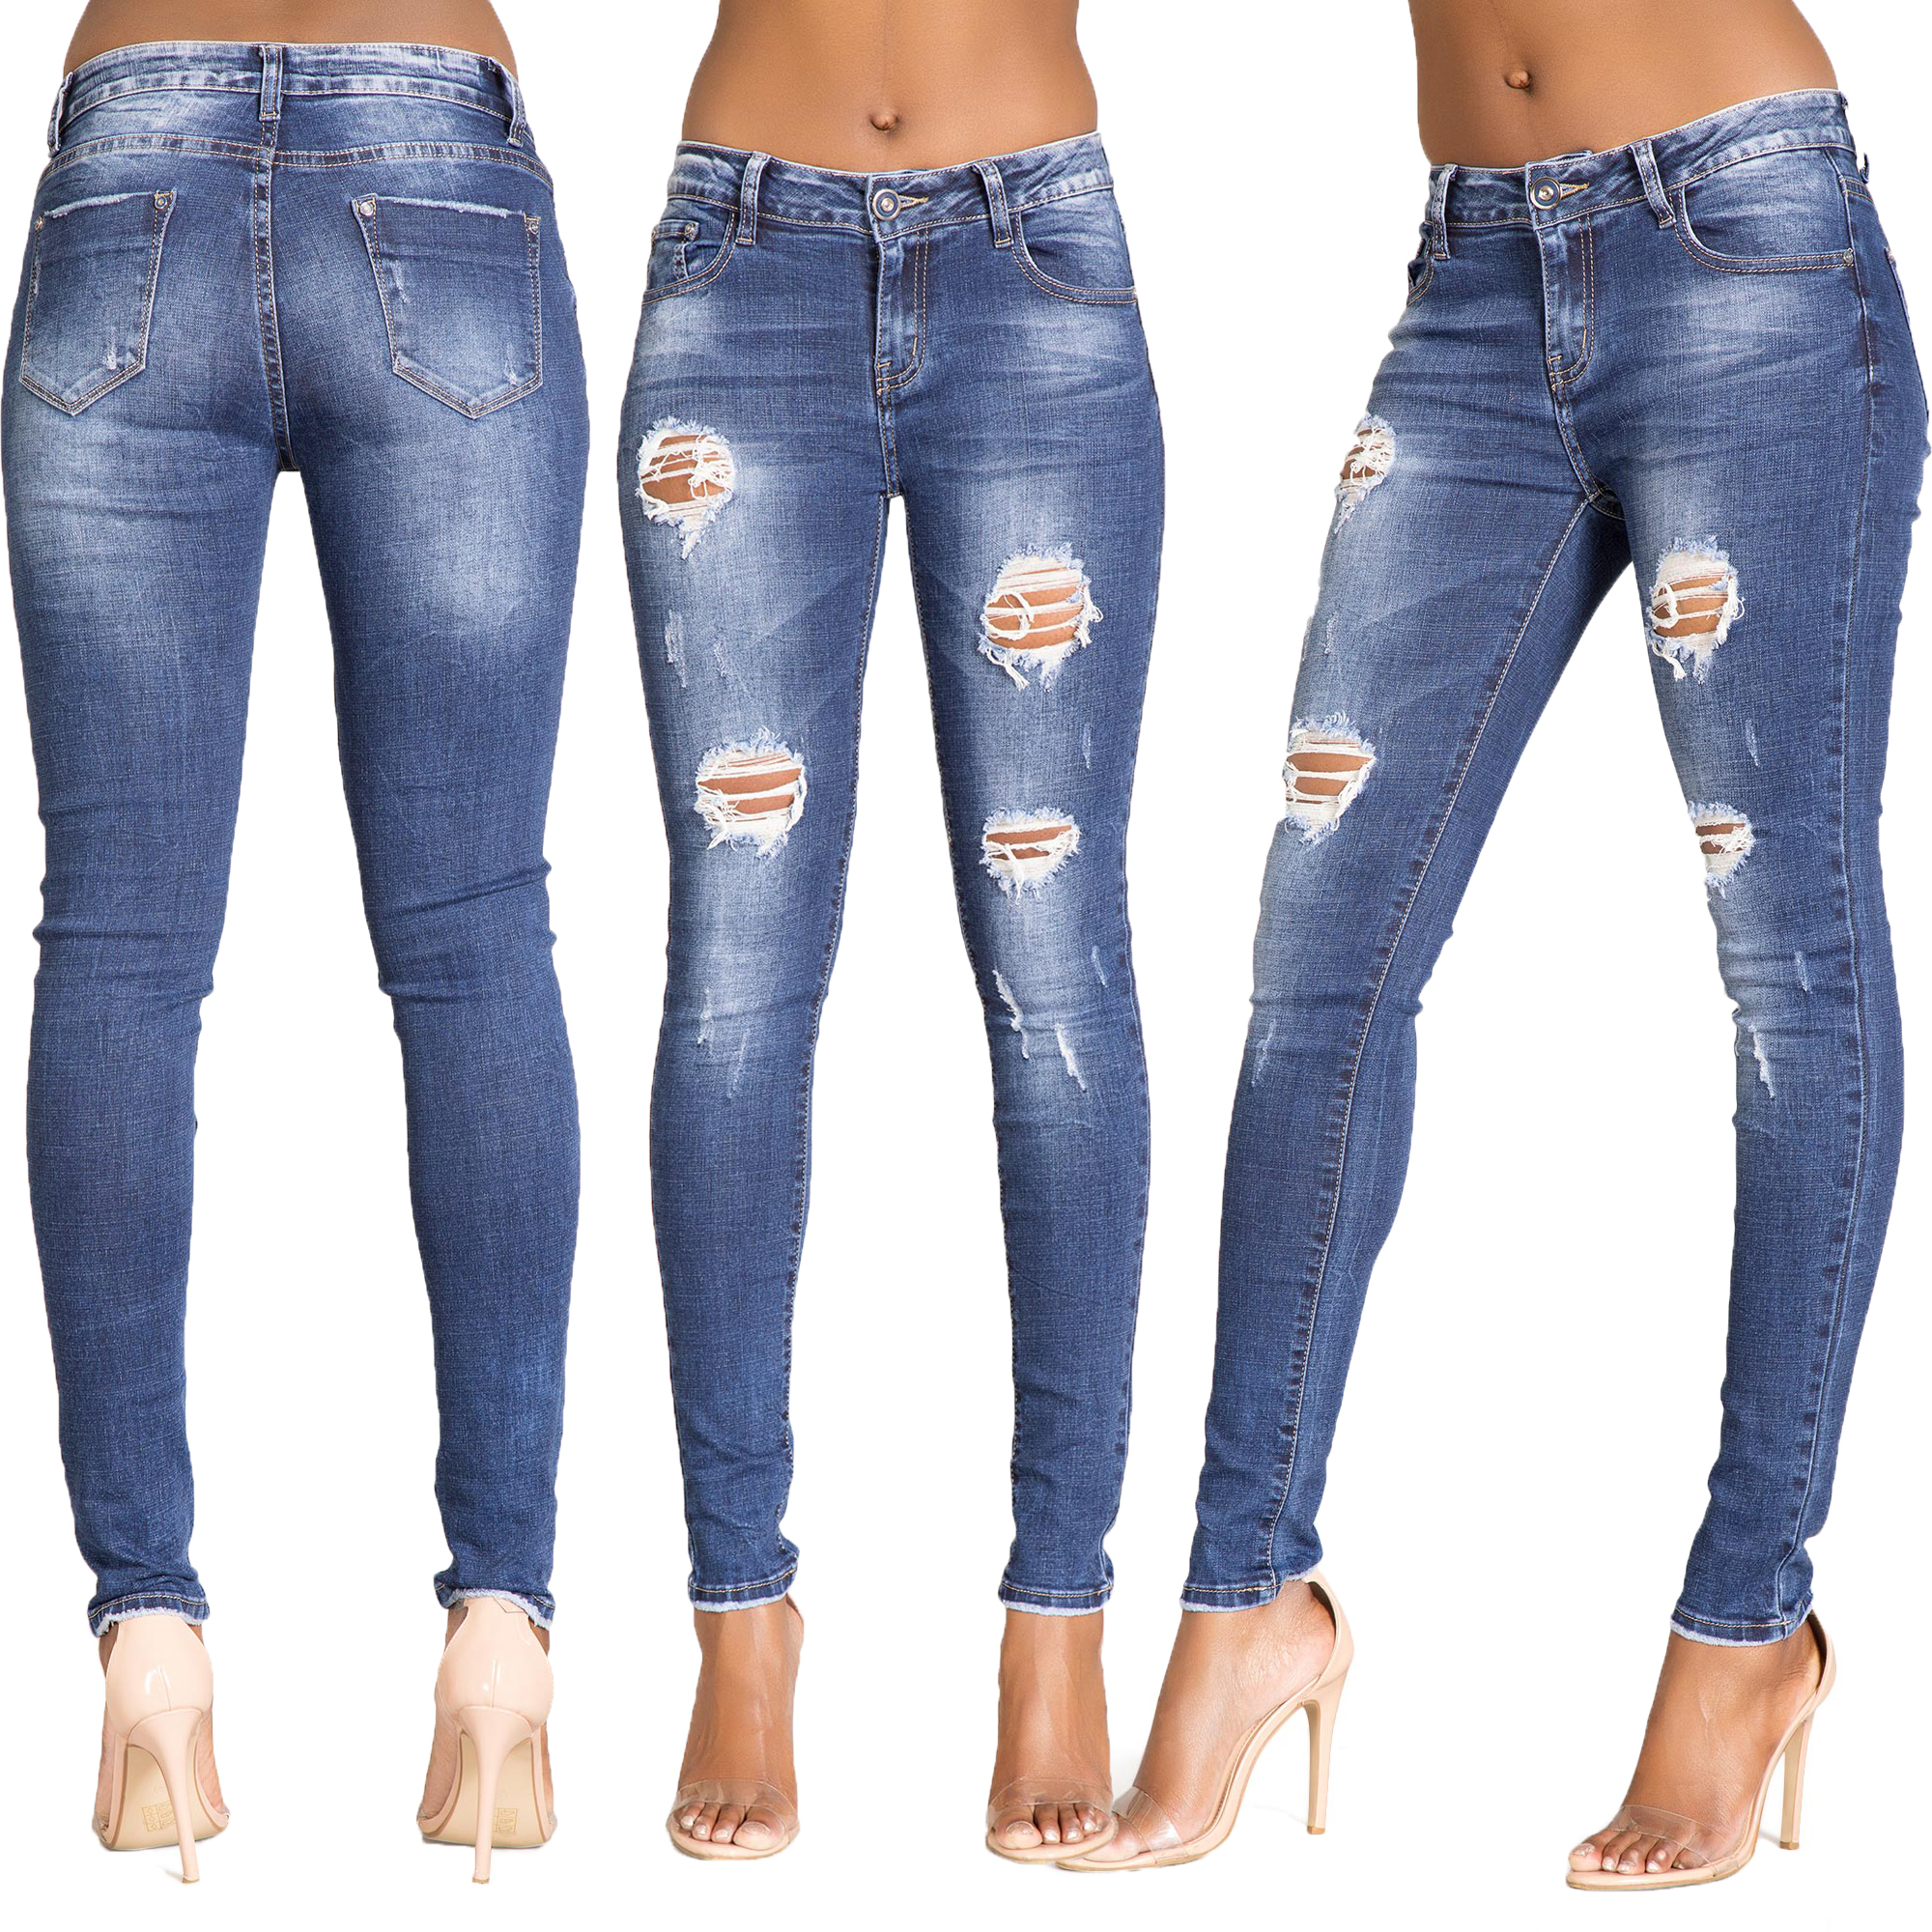 Womens Blue Ripped Knee Cut Skinny Jeans Slim Fit Ladies Denim Size 6 8 10  12 14 102f7f352e